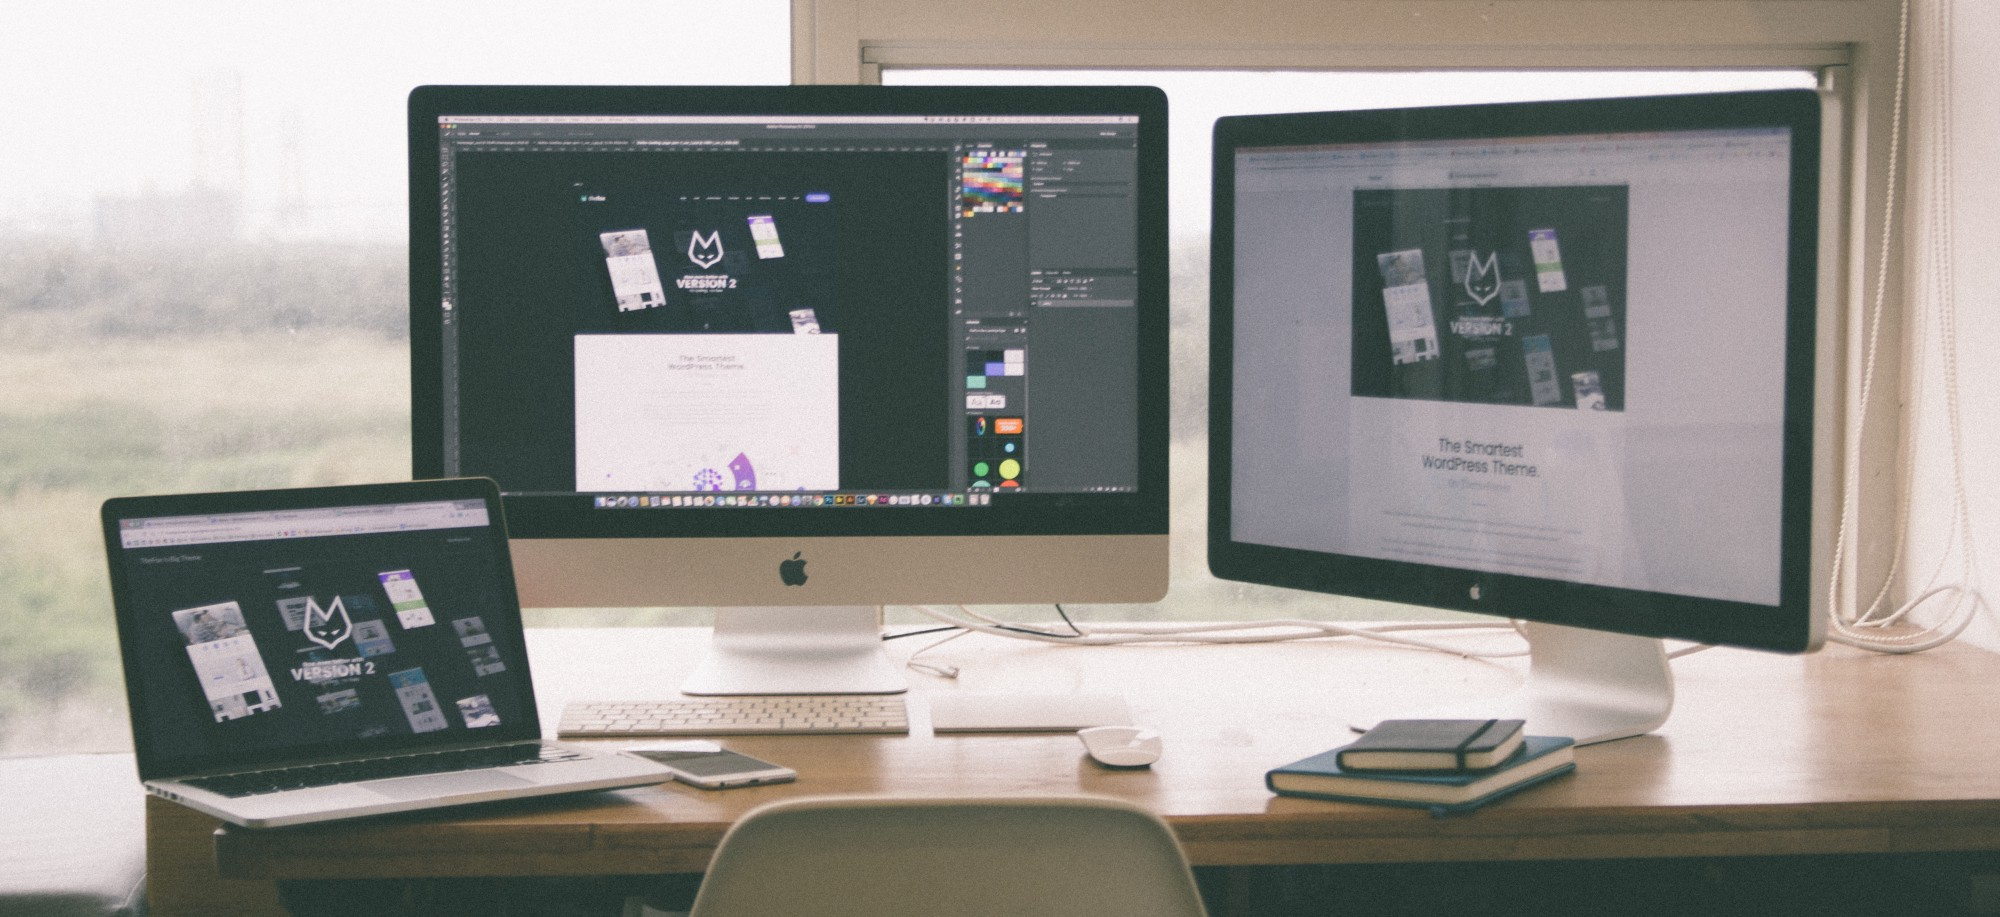 Tips   resources to help you get started. 7 steps to become a UI UX designer   Nicole s Blog